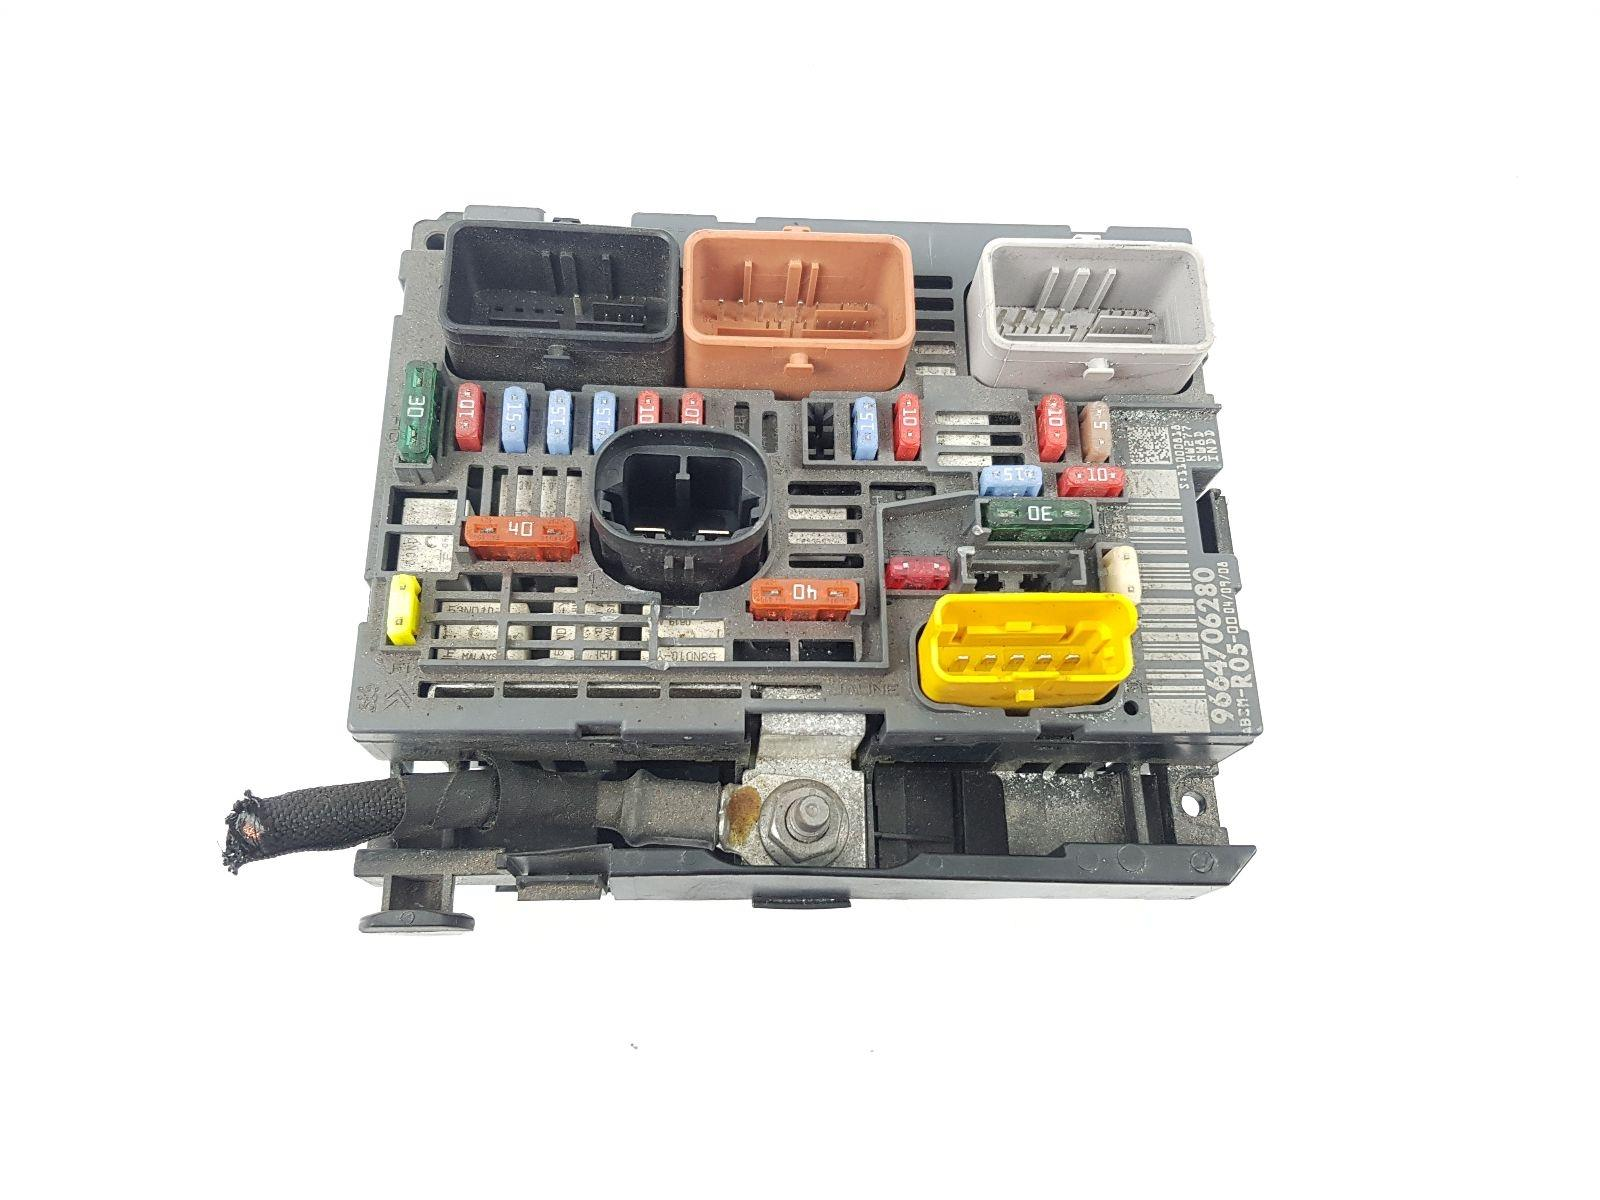 Peugeot 308 2008 To 2010 Fuse Box Diesel Manual For Sale From Audi 90